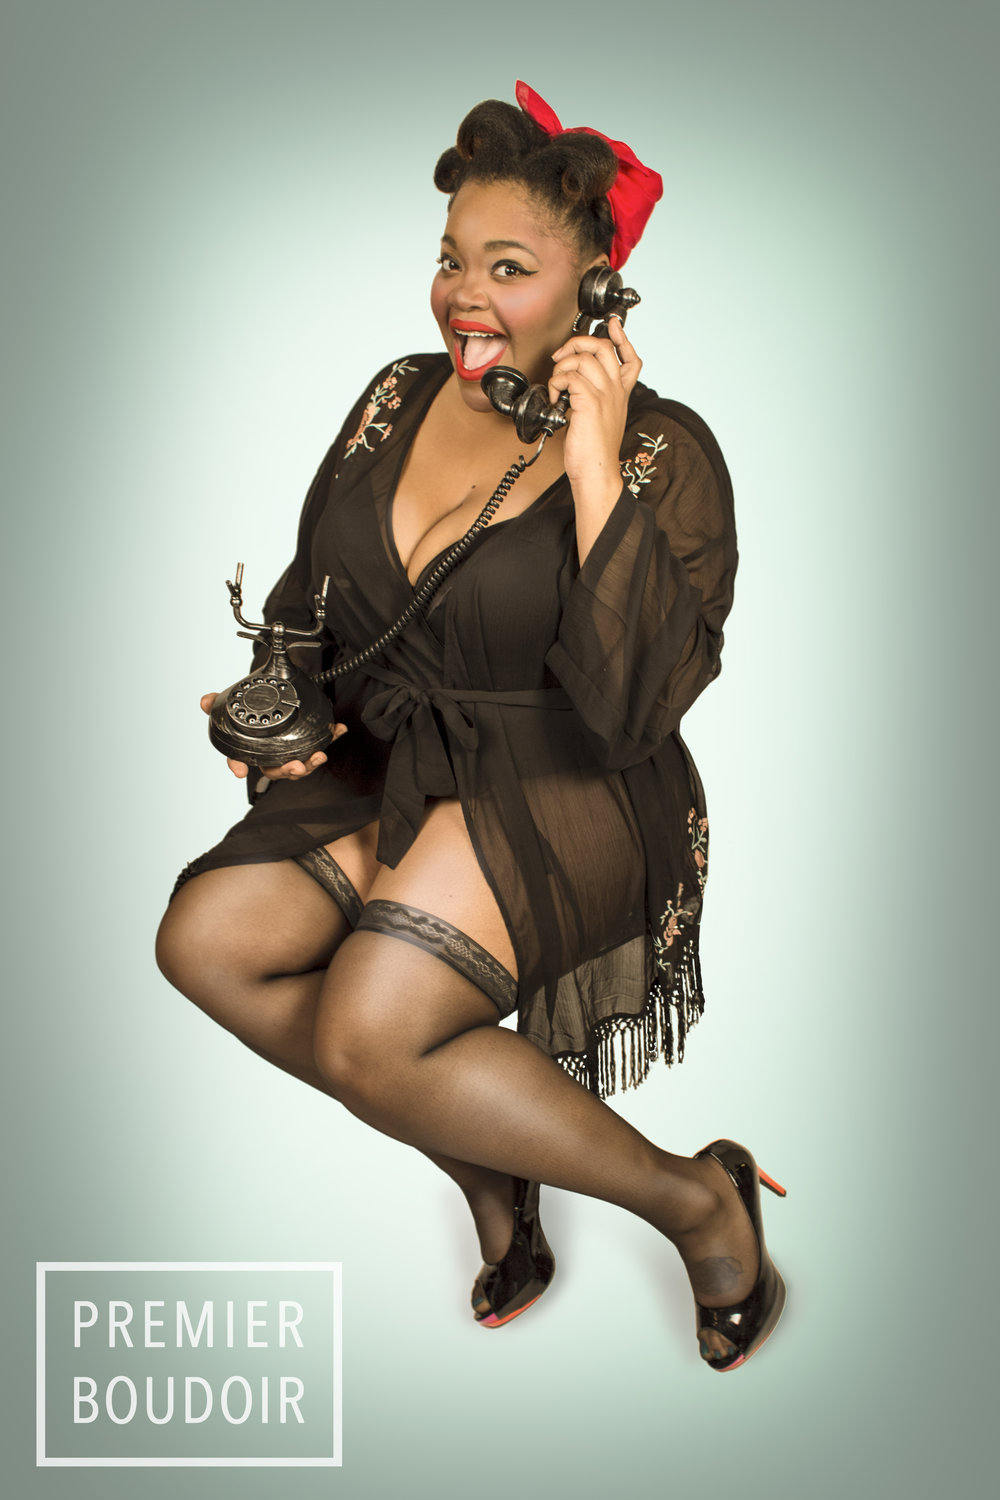 cleveland akron pinup retro vintage calender girl glamour shoot photo photographer photography